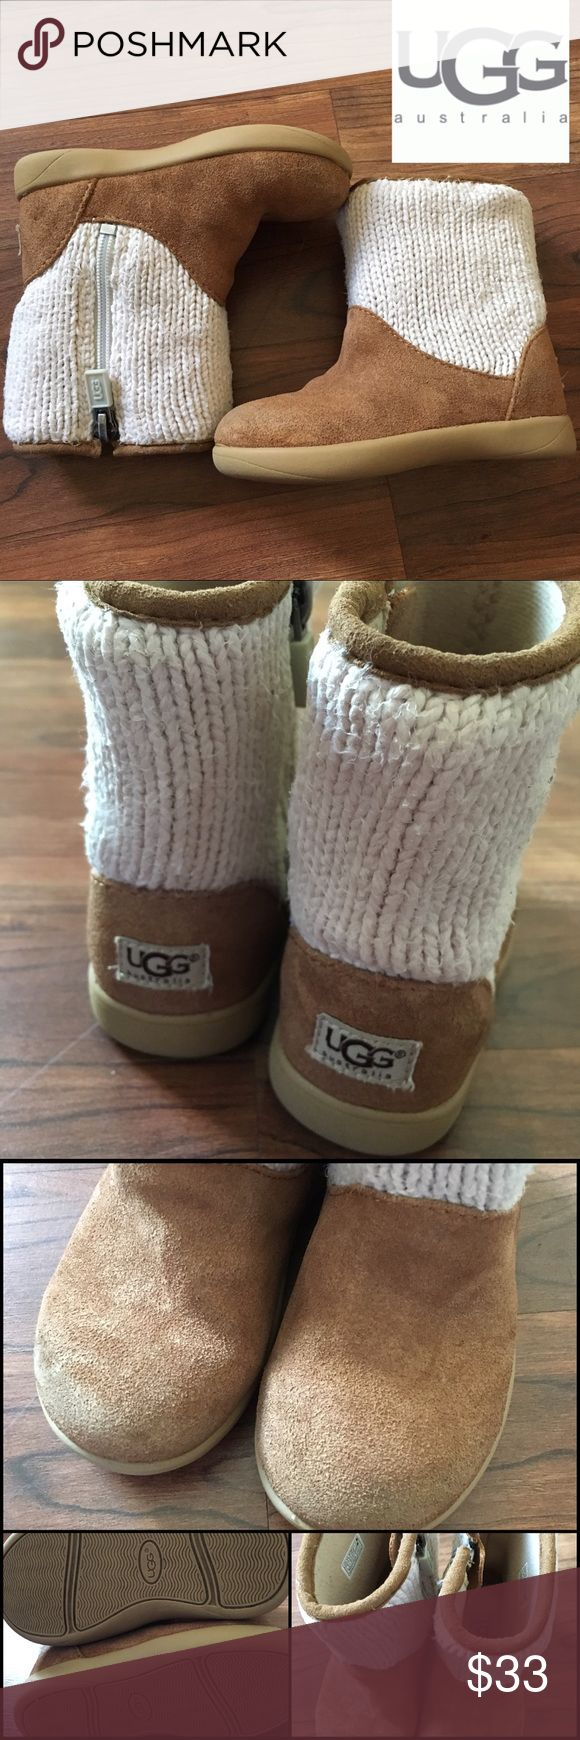 "Toddlers Size 6 Ugg Australia Dove Boots - VGUC I bought these for my niece and she only wore them a handful of times (her mom was afraid she would ""ruin"" them) and they have been in storage the past year. They are an infant/toddler size 6 and zip up the side so you can slip them on without fuss. They are in VGUC and have traction on the bottom for wobbly walkers. Style is the Dove and there is some minor wear pilling on the knit but a quick shaver can take care of that. ☺️ 🚫trades…"